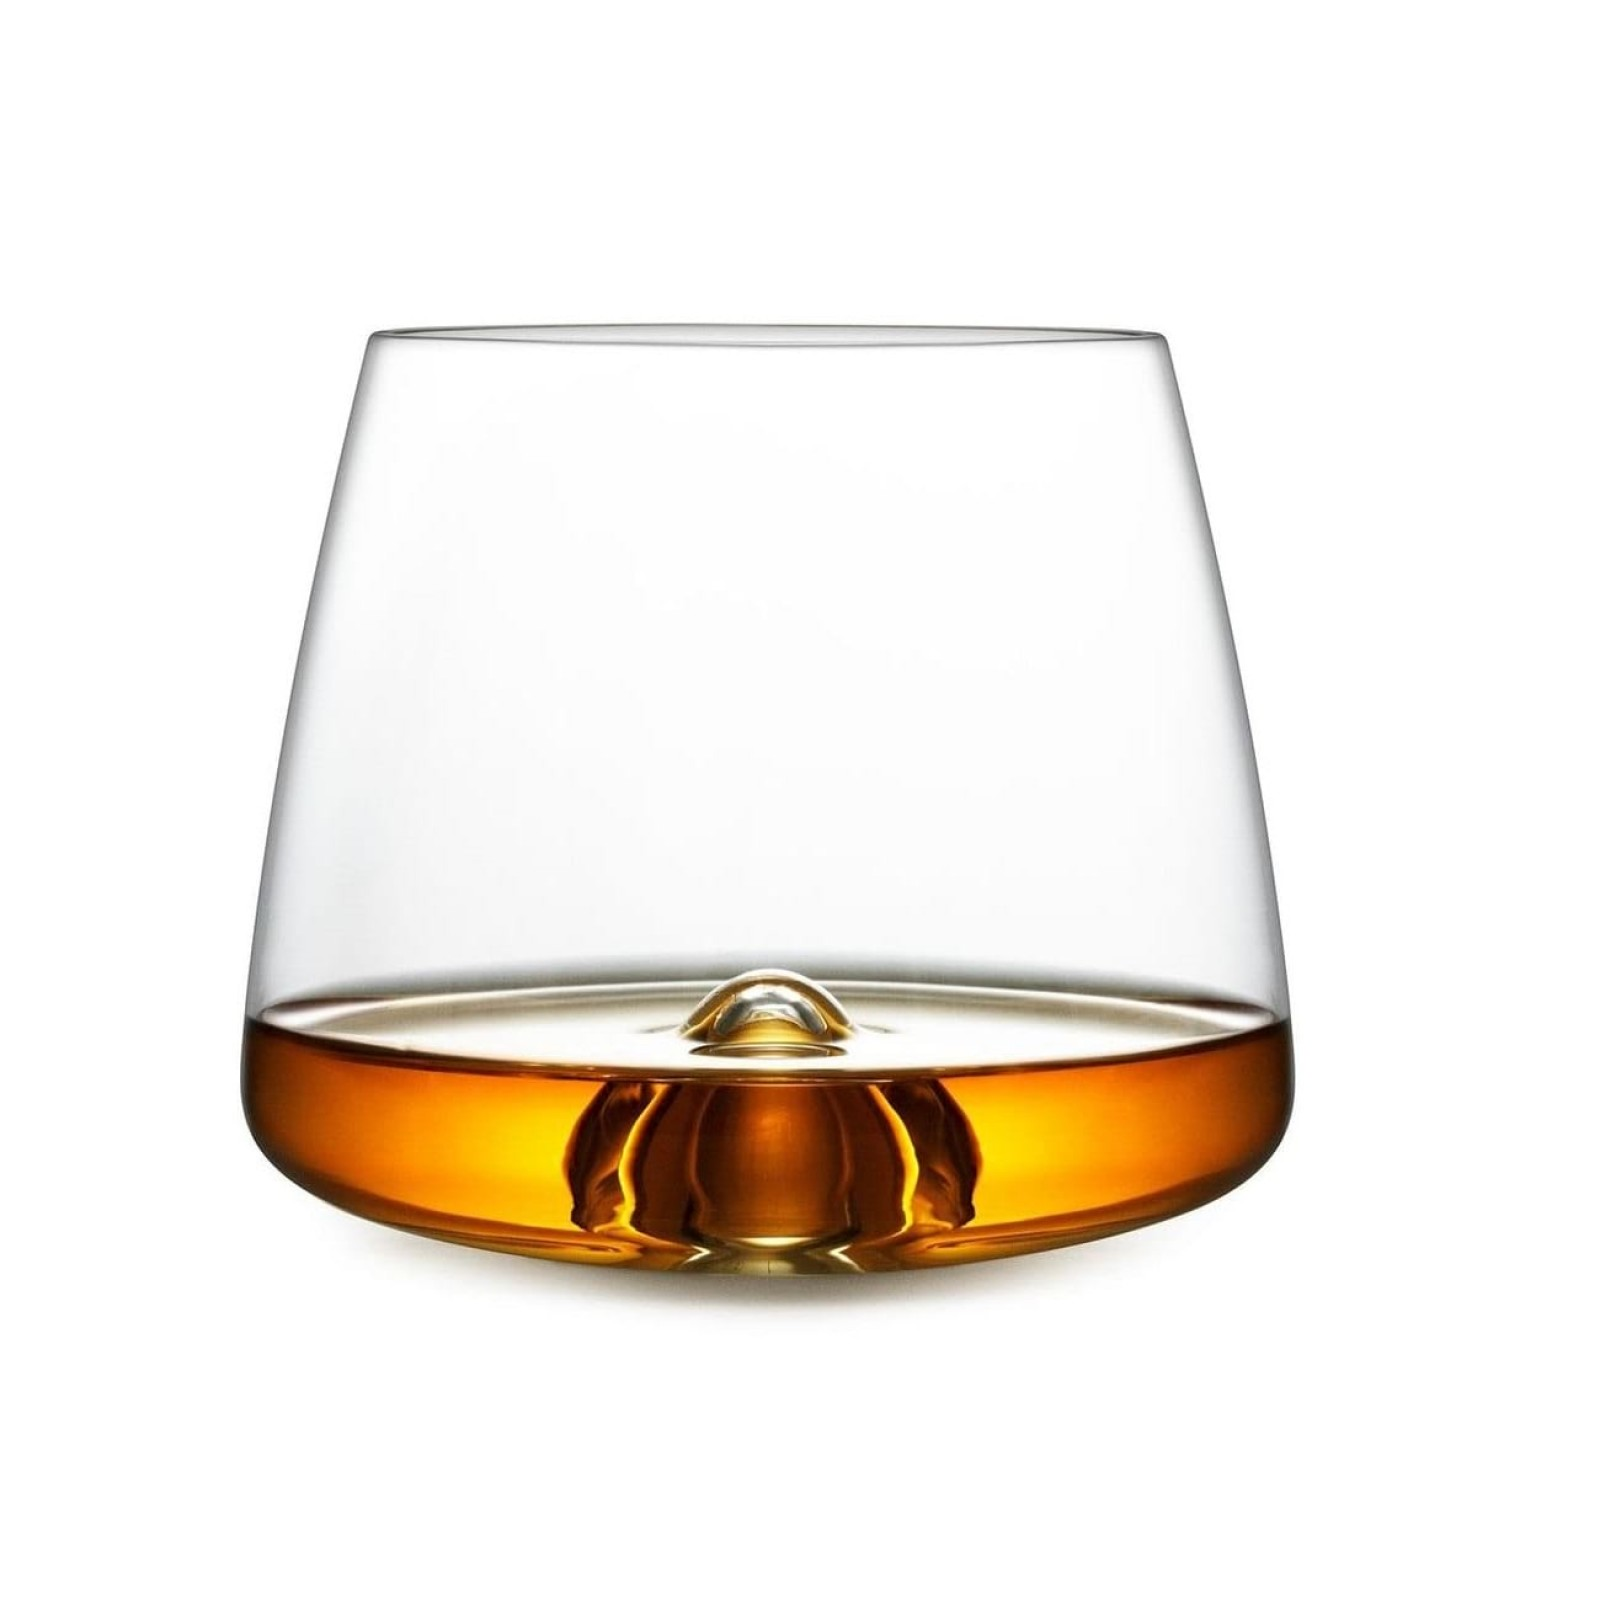 Whiskey Glasses (set of 2) - Normann Copenhagen